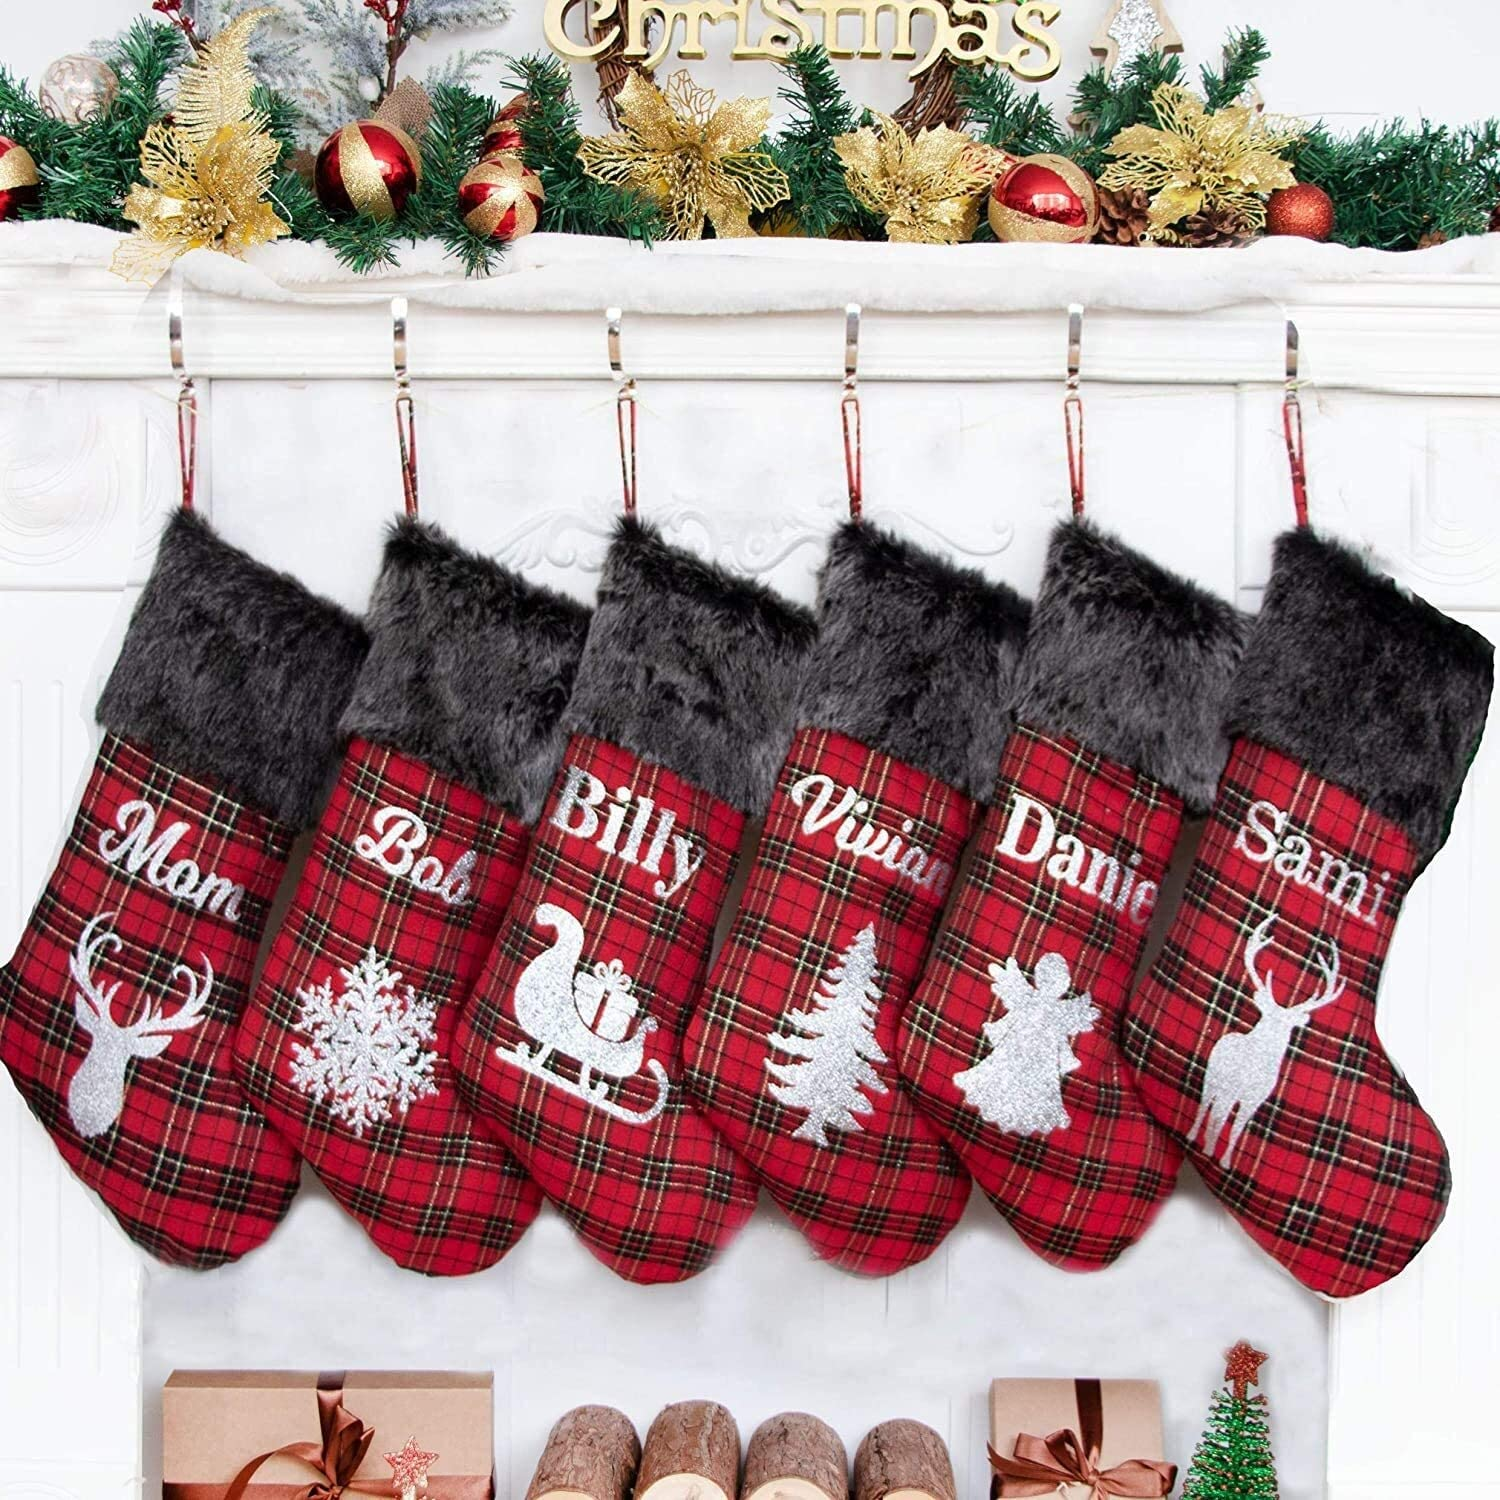 2020 NEW Personalised Christmas Stockings Plaid Max 58% OFF Red Bargain C with Names